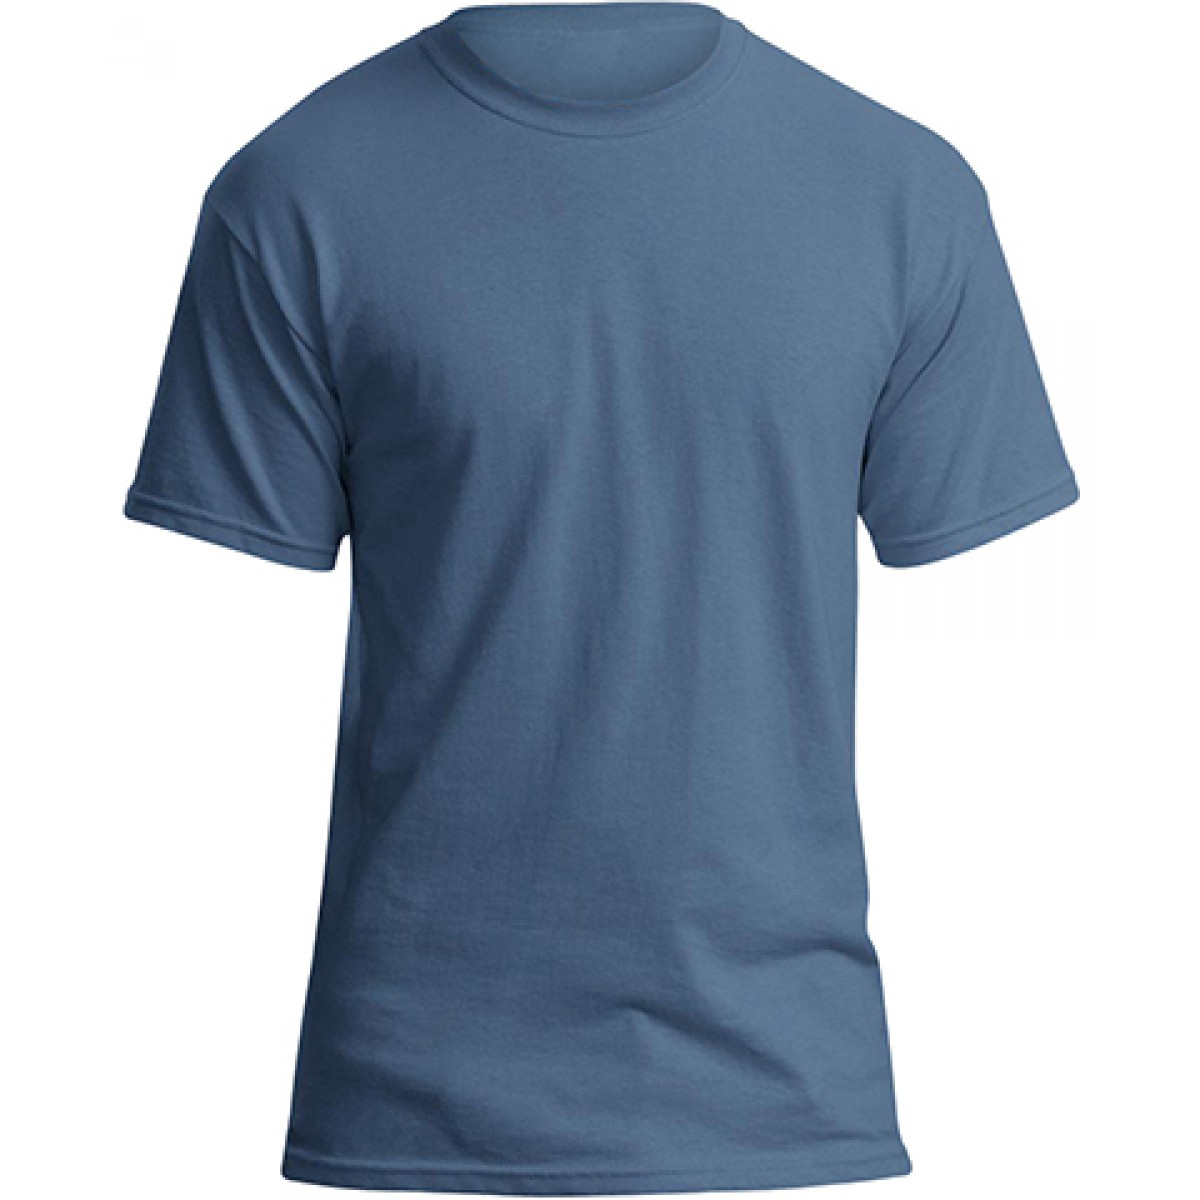 Soft 100% Cotton T-Shirt-Indigo Blue-XL